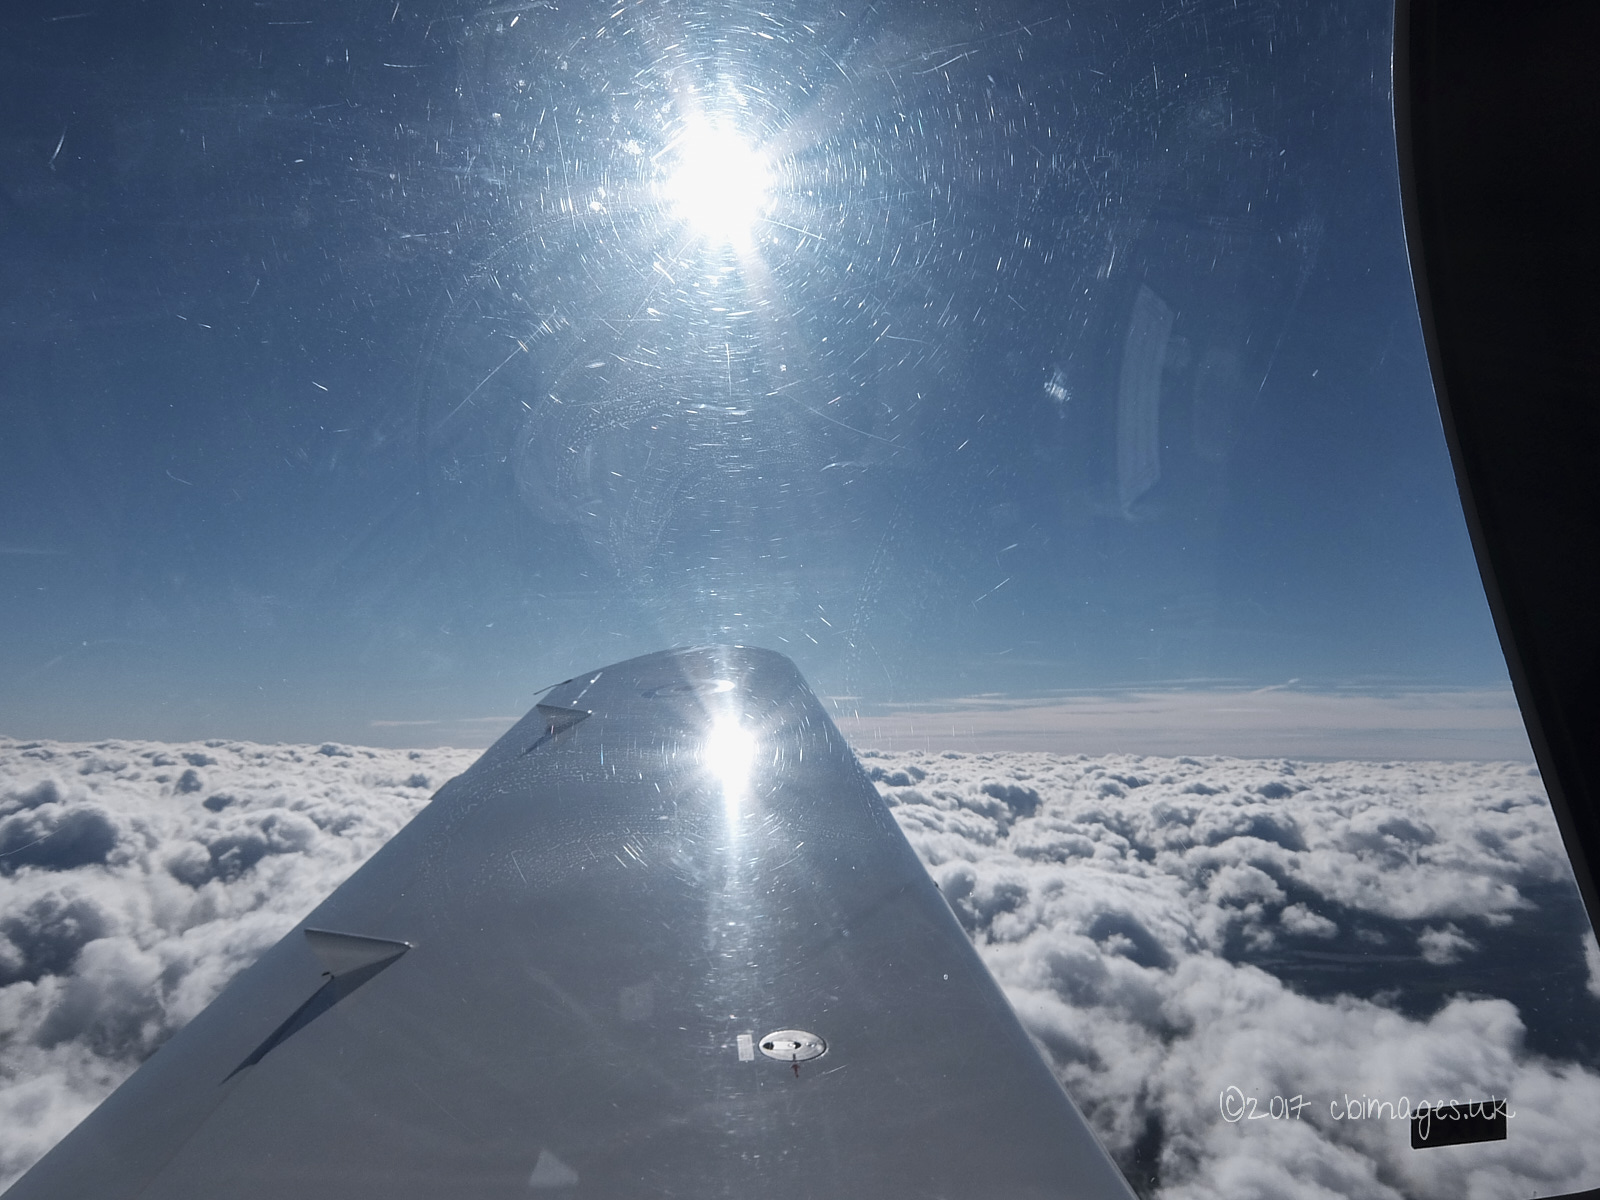 Aircraft wing and clouds with sun.